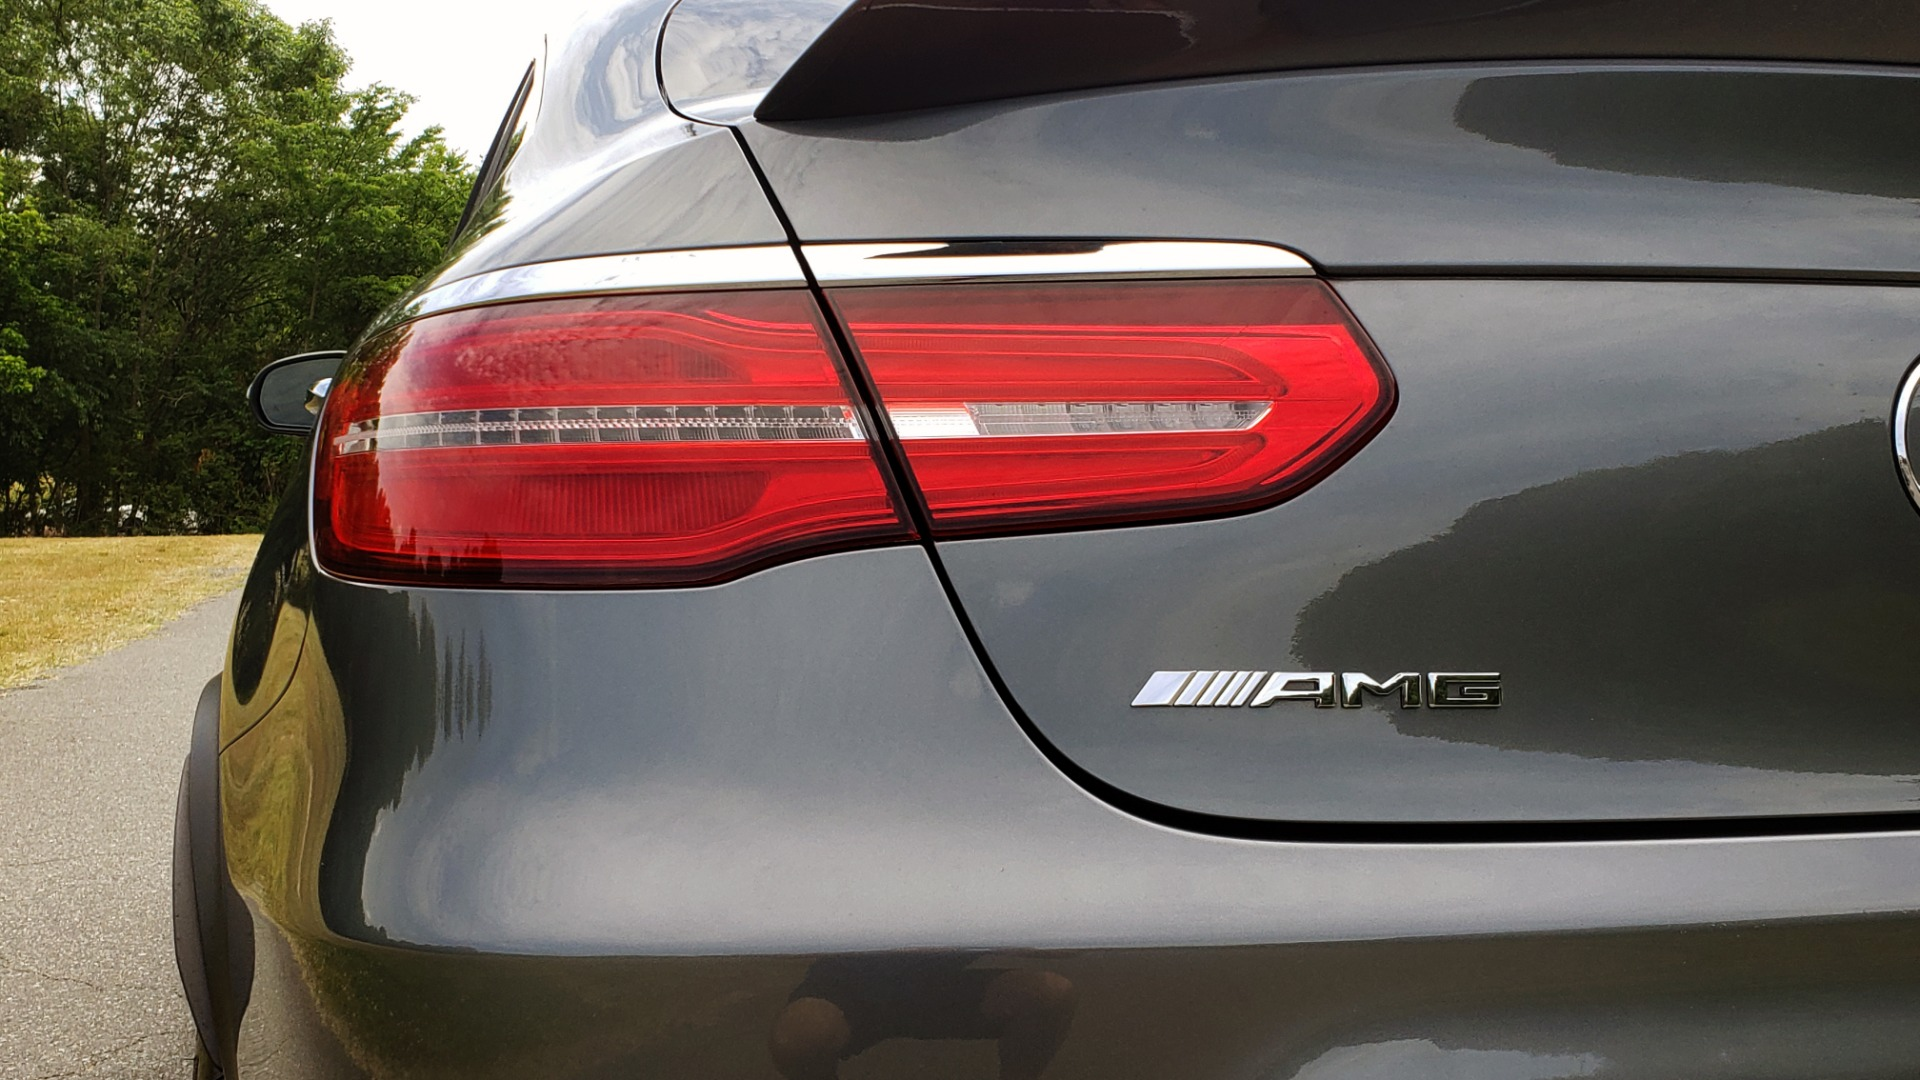 Used 2019 Mercedes-Benz GLC AMG 63 S 4MATIC COUPE / NAV / TRACK PACE APP / AMG PERF EXH / MULTIMEDIA for sale Sold at Formula Imports in Charlotte NC 28227 37